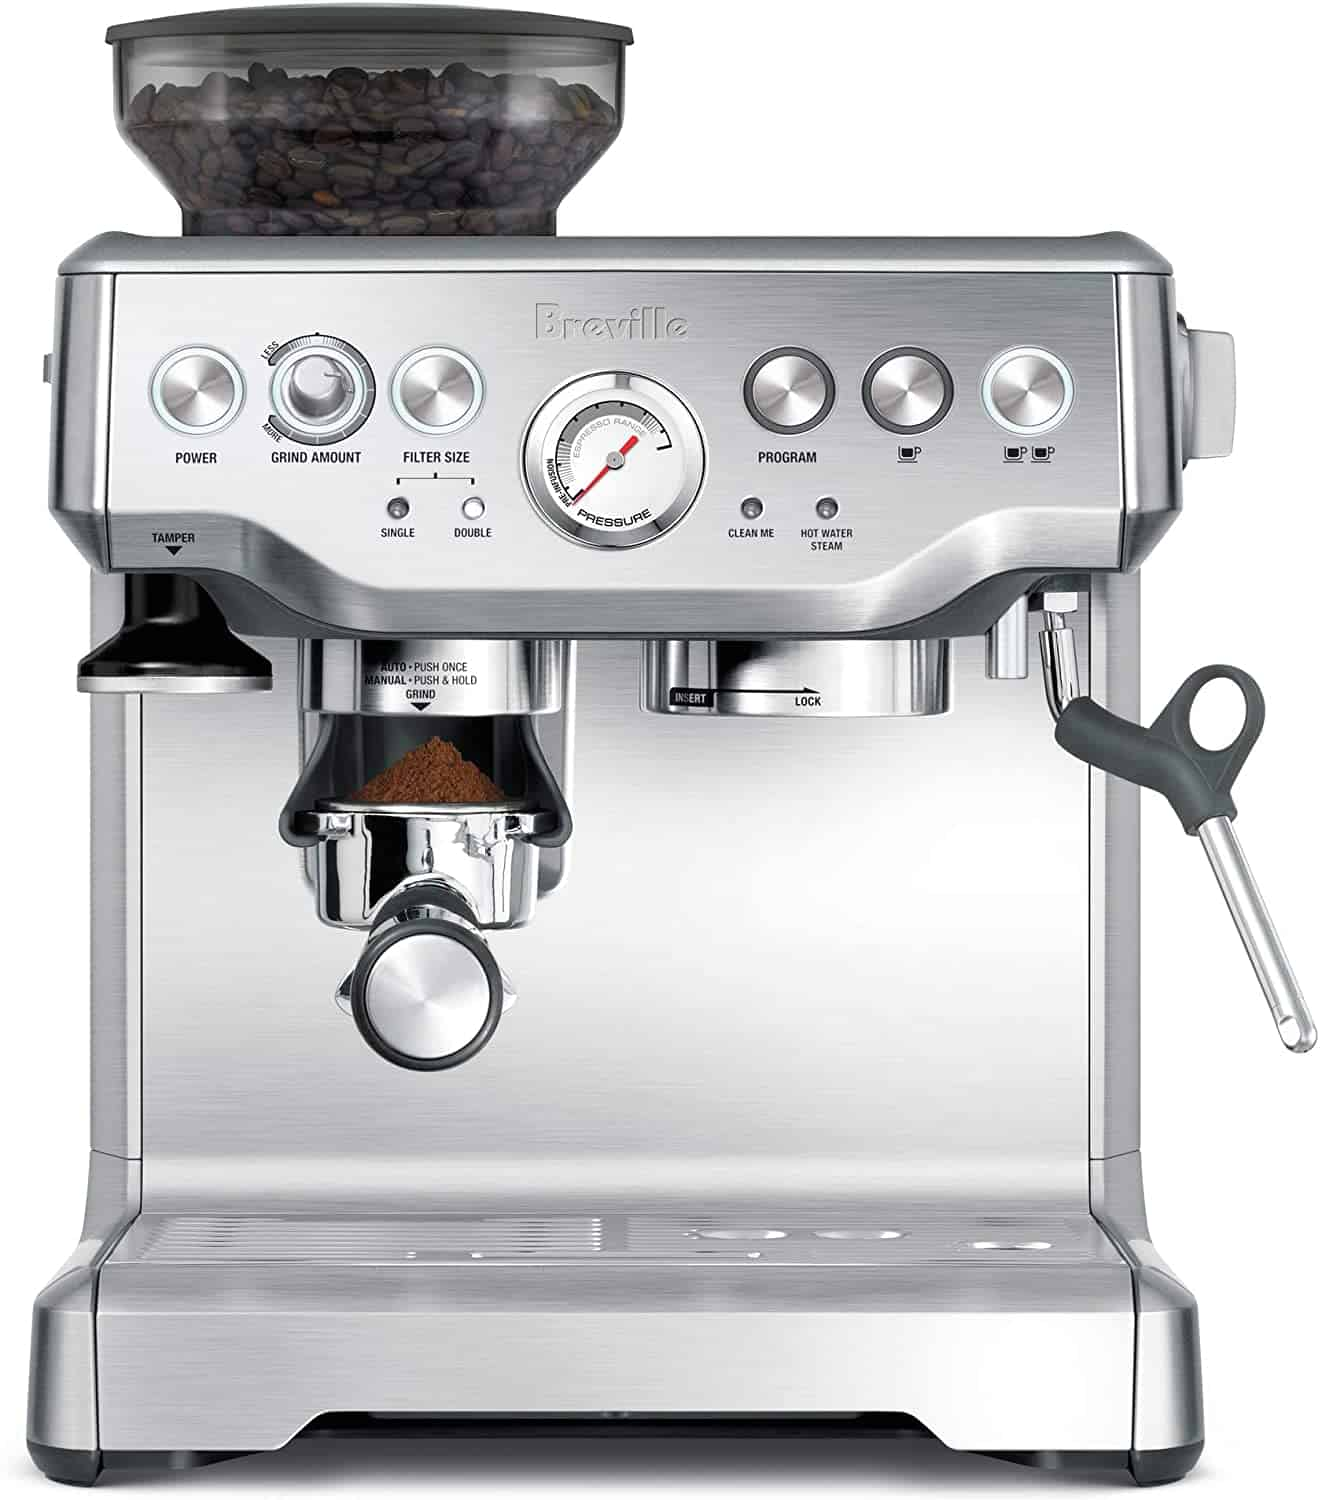 Coffee Maker with Grinder made by Breville in Espresso Style